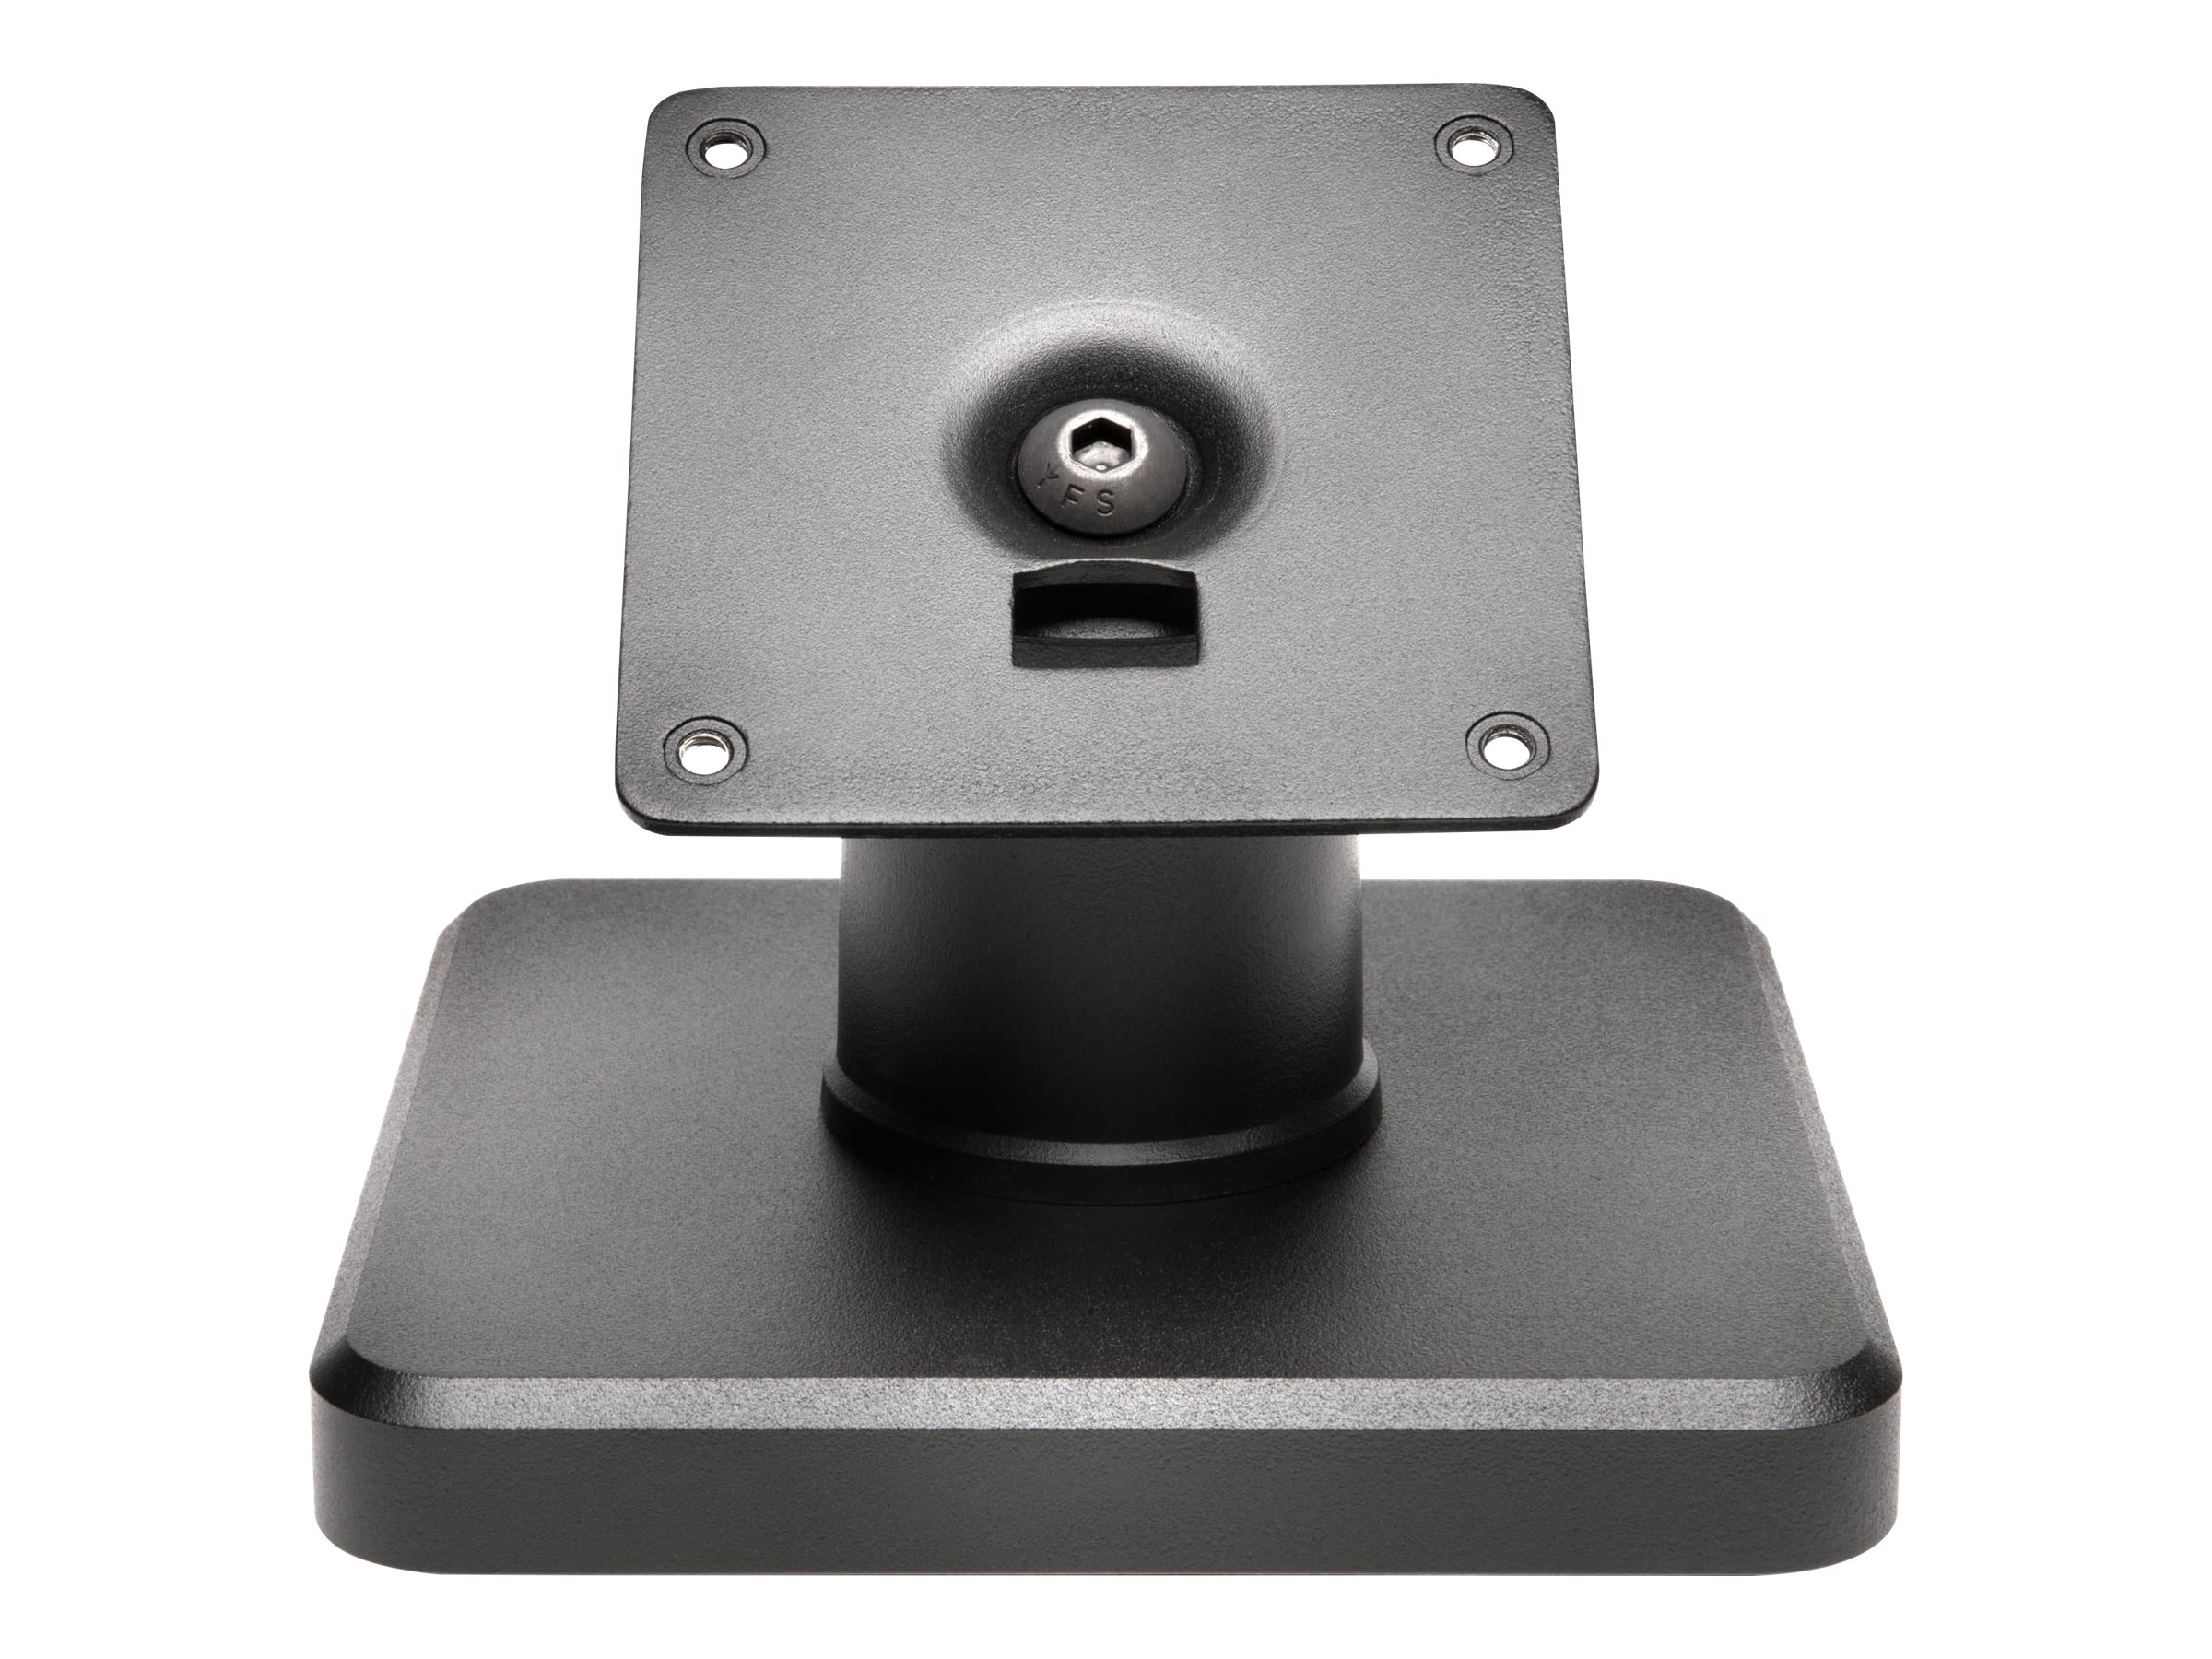 Kensington Countertop Tablet Stand - stand